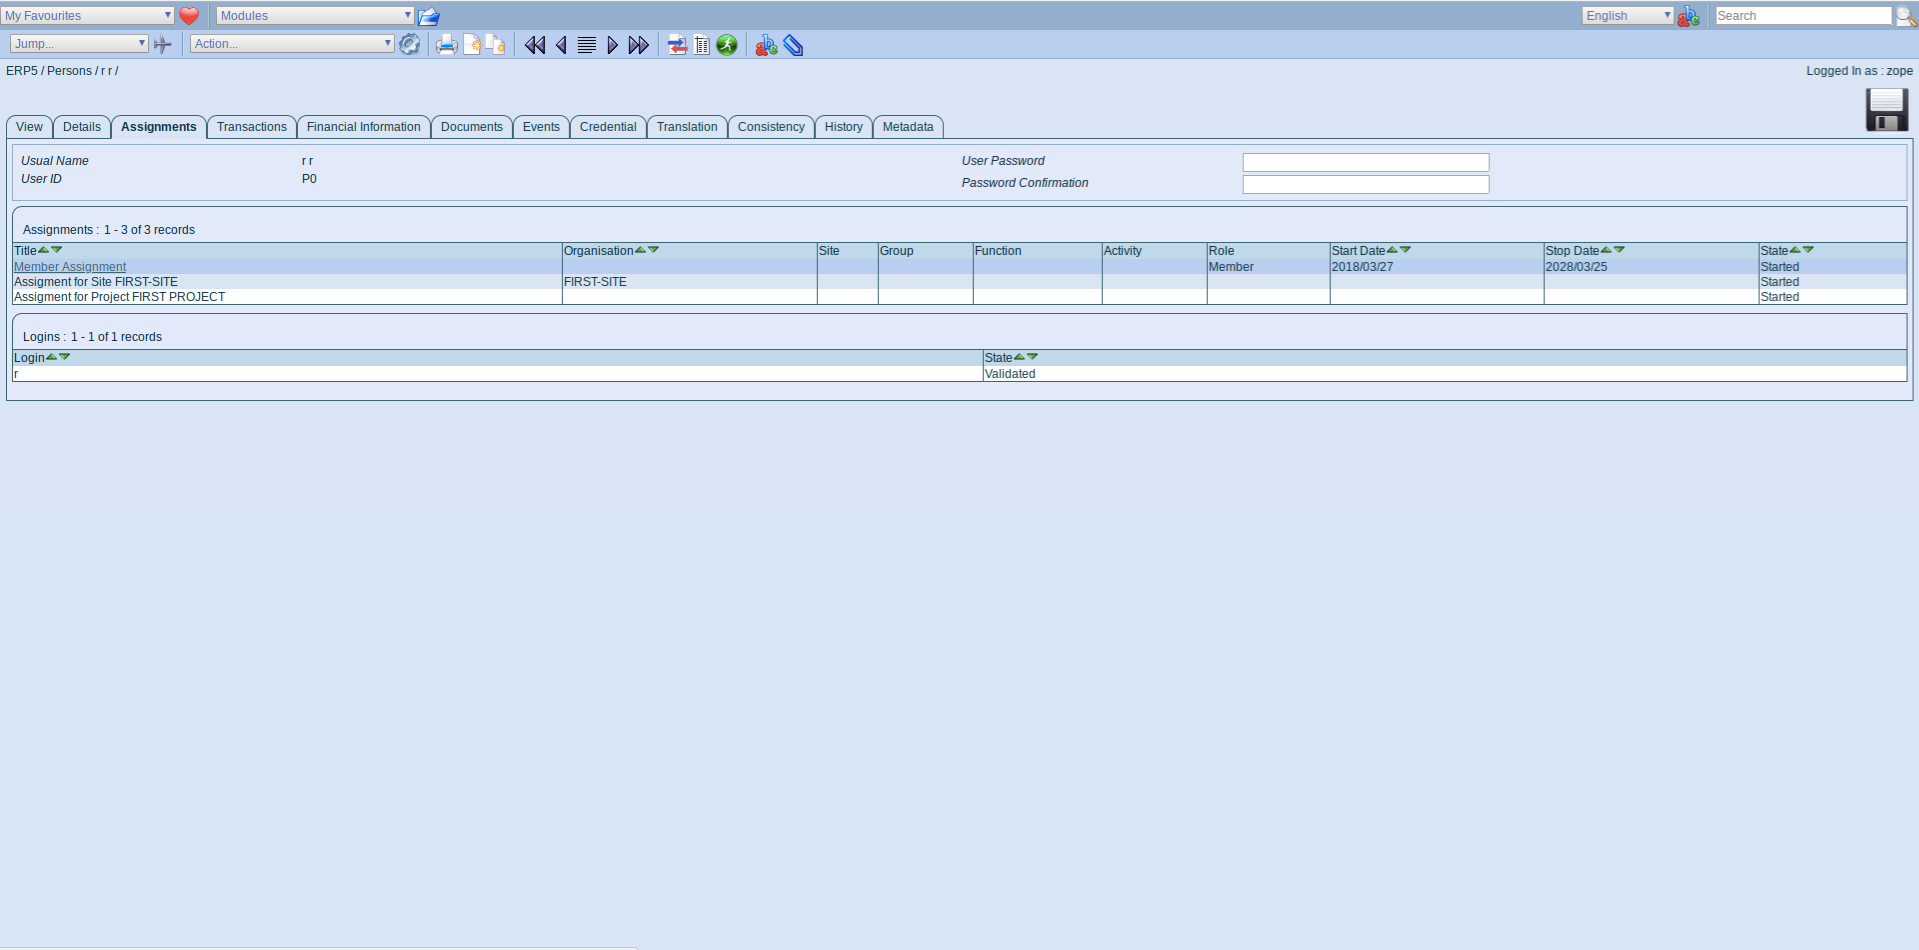 ERP5 Interface - Member Assignment